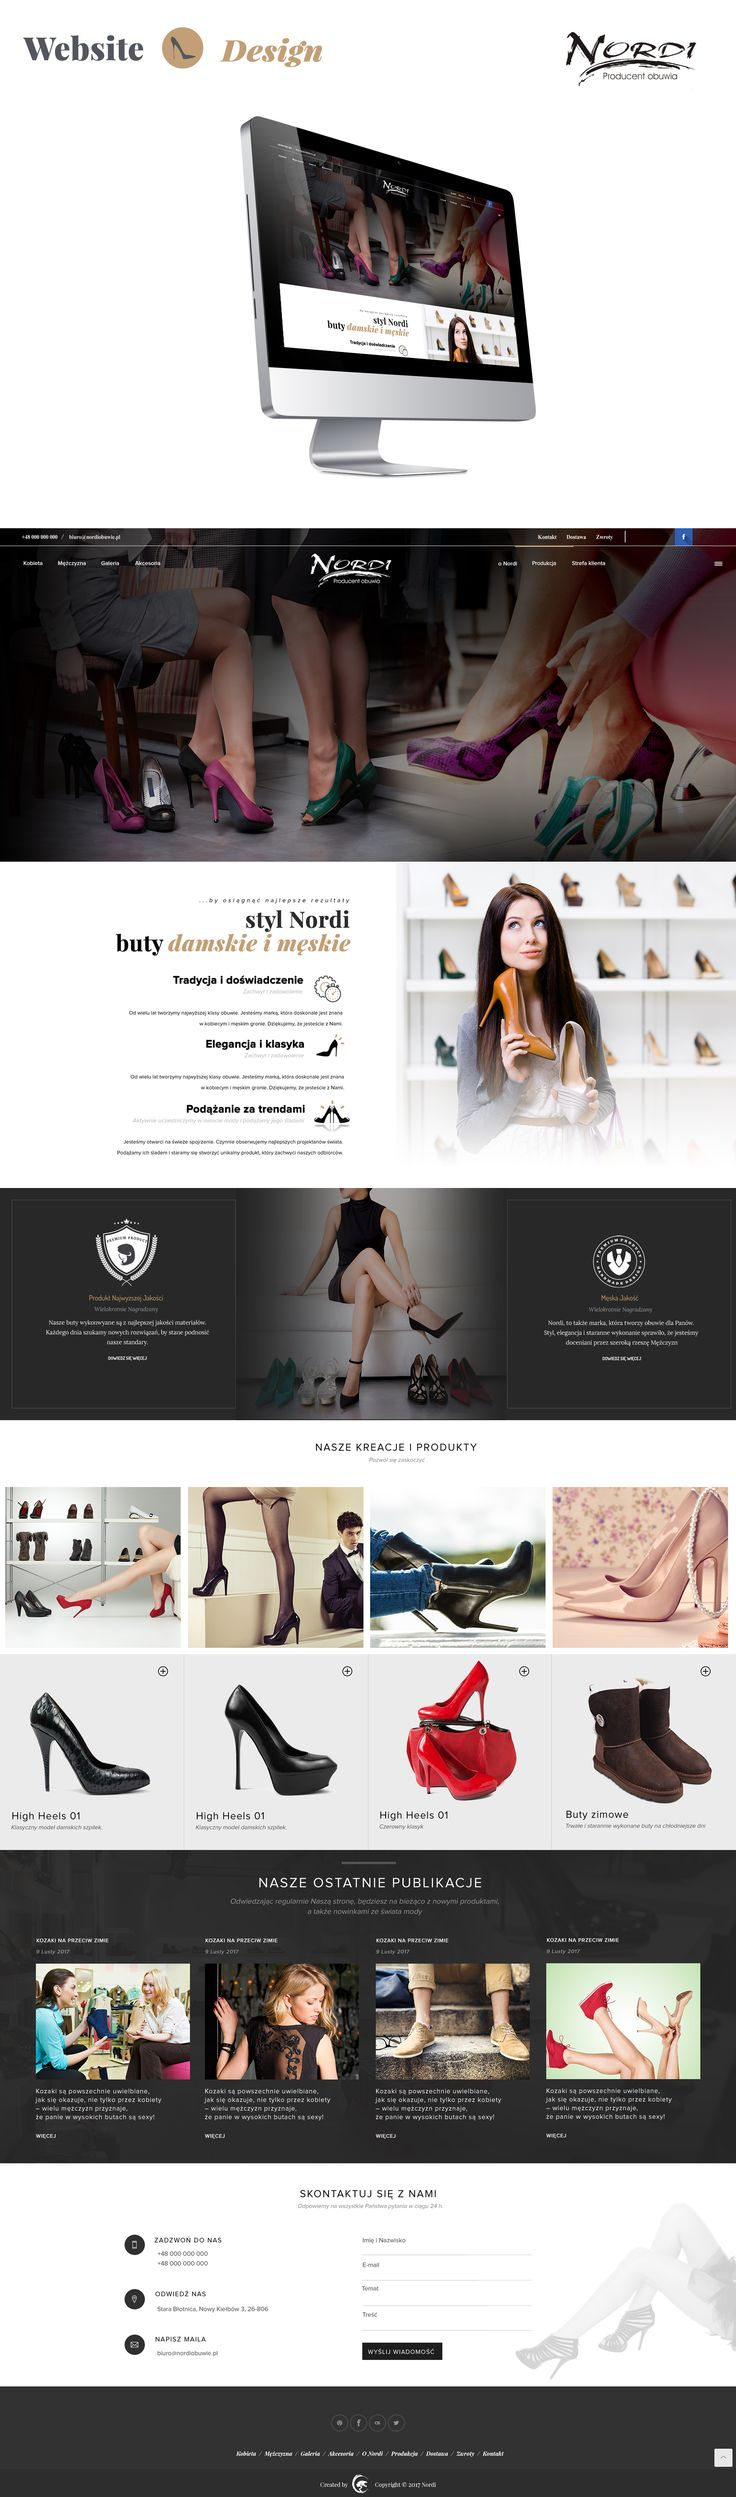 Nordi Shes - Website Design